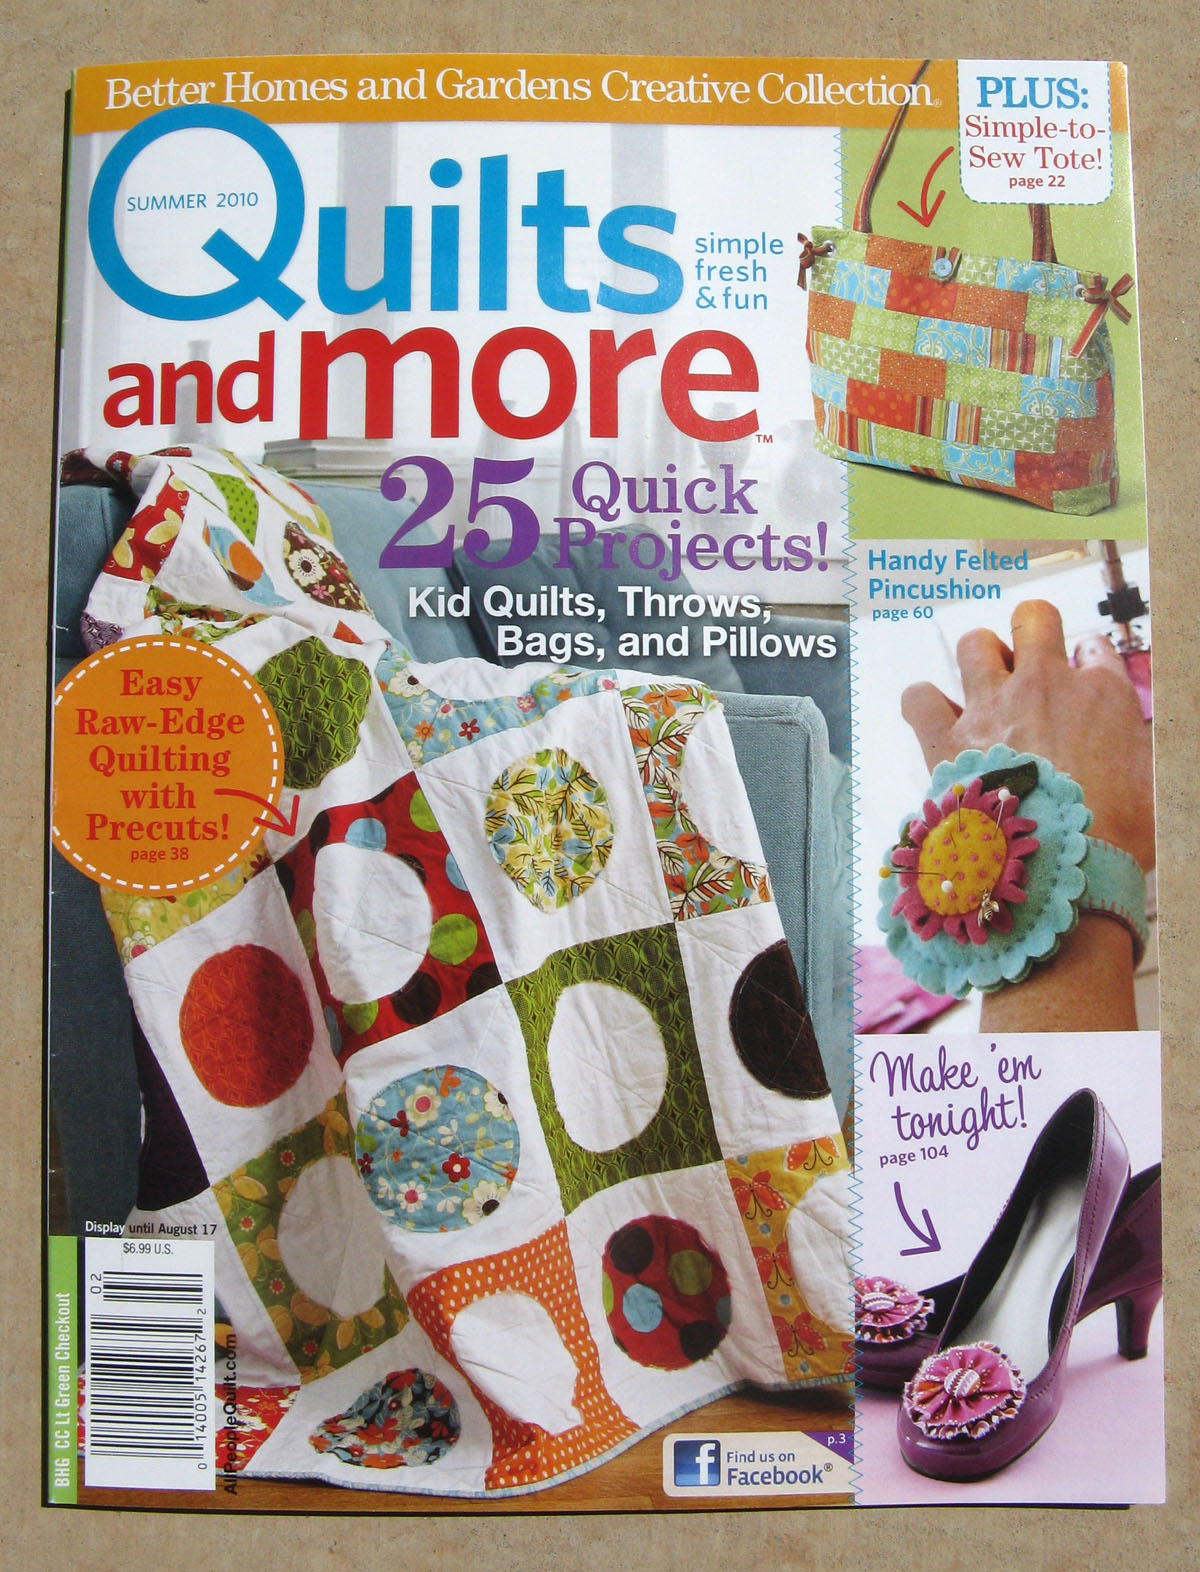 Quilt it For Christmas Magazine images : quilt it for christmas magazine - Adamdwight.com